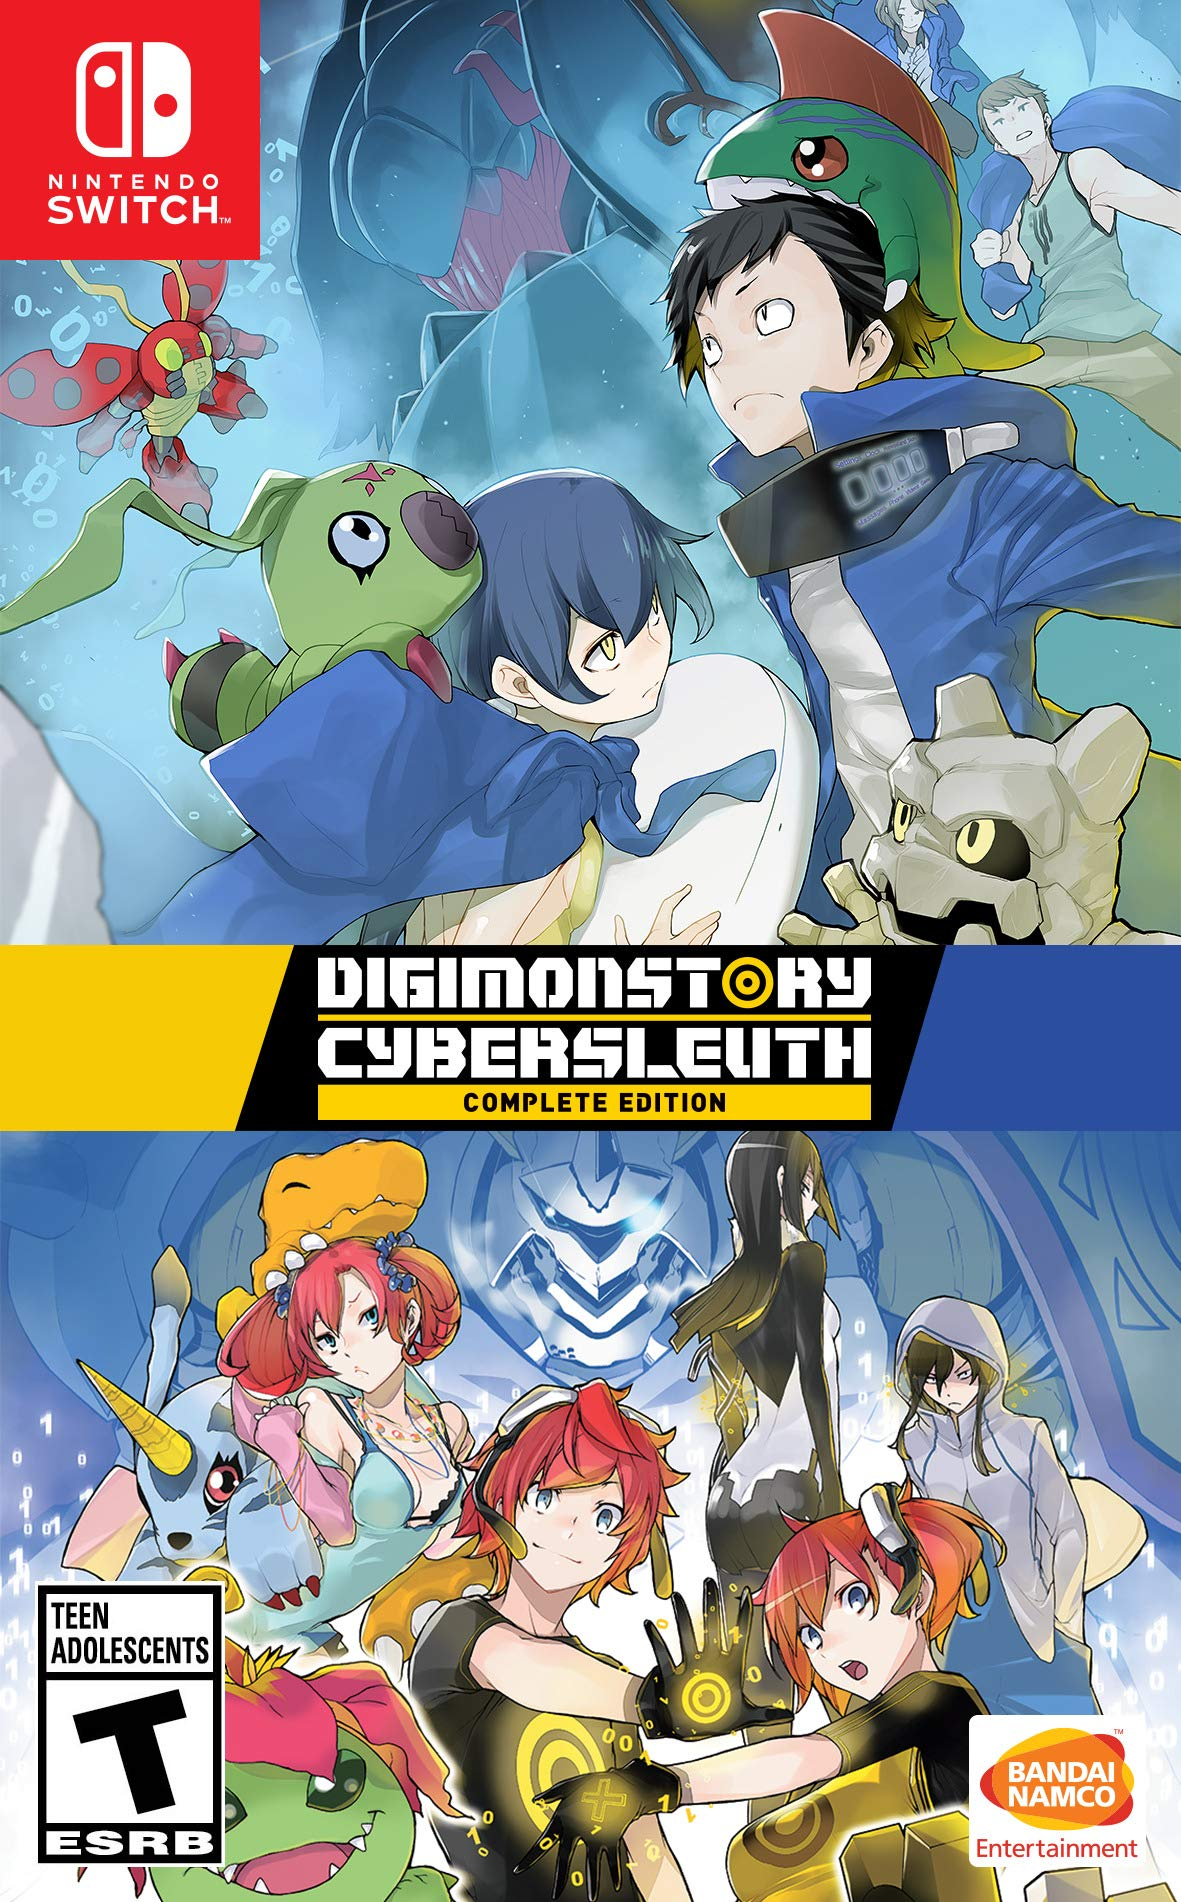 digimon-story-cyber-sleuth-complete-edition-game-nintendo-switch